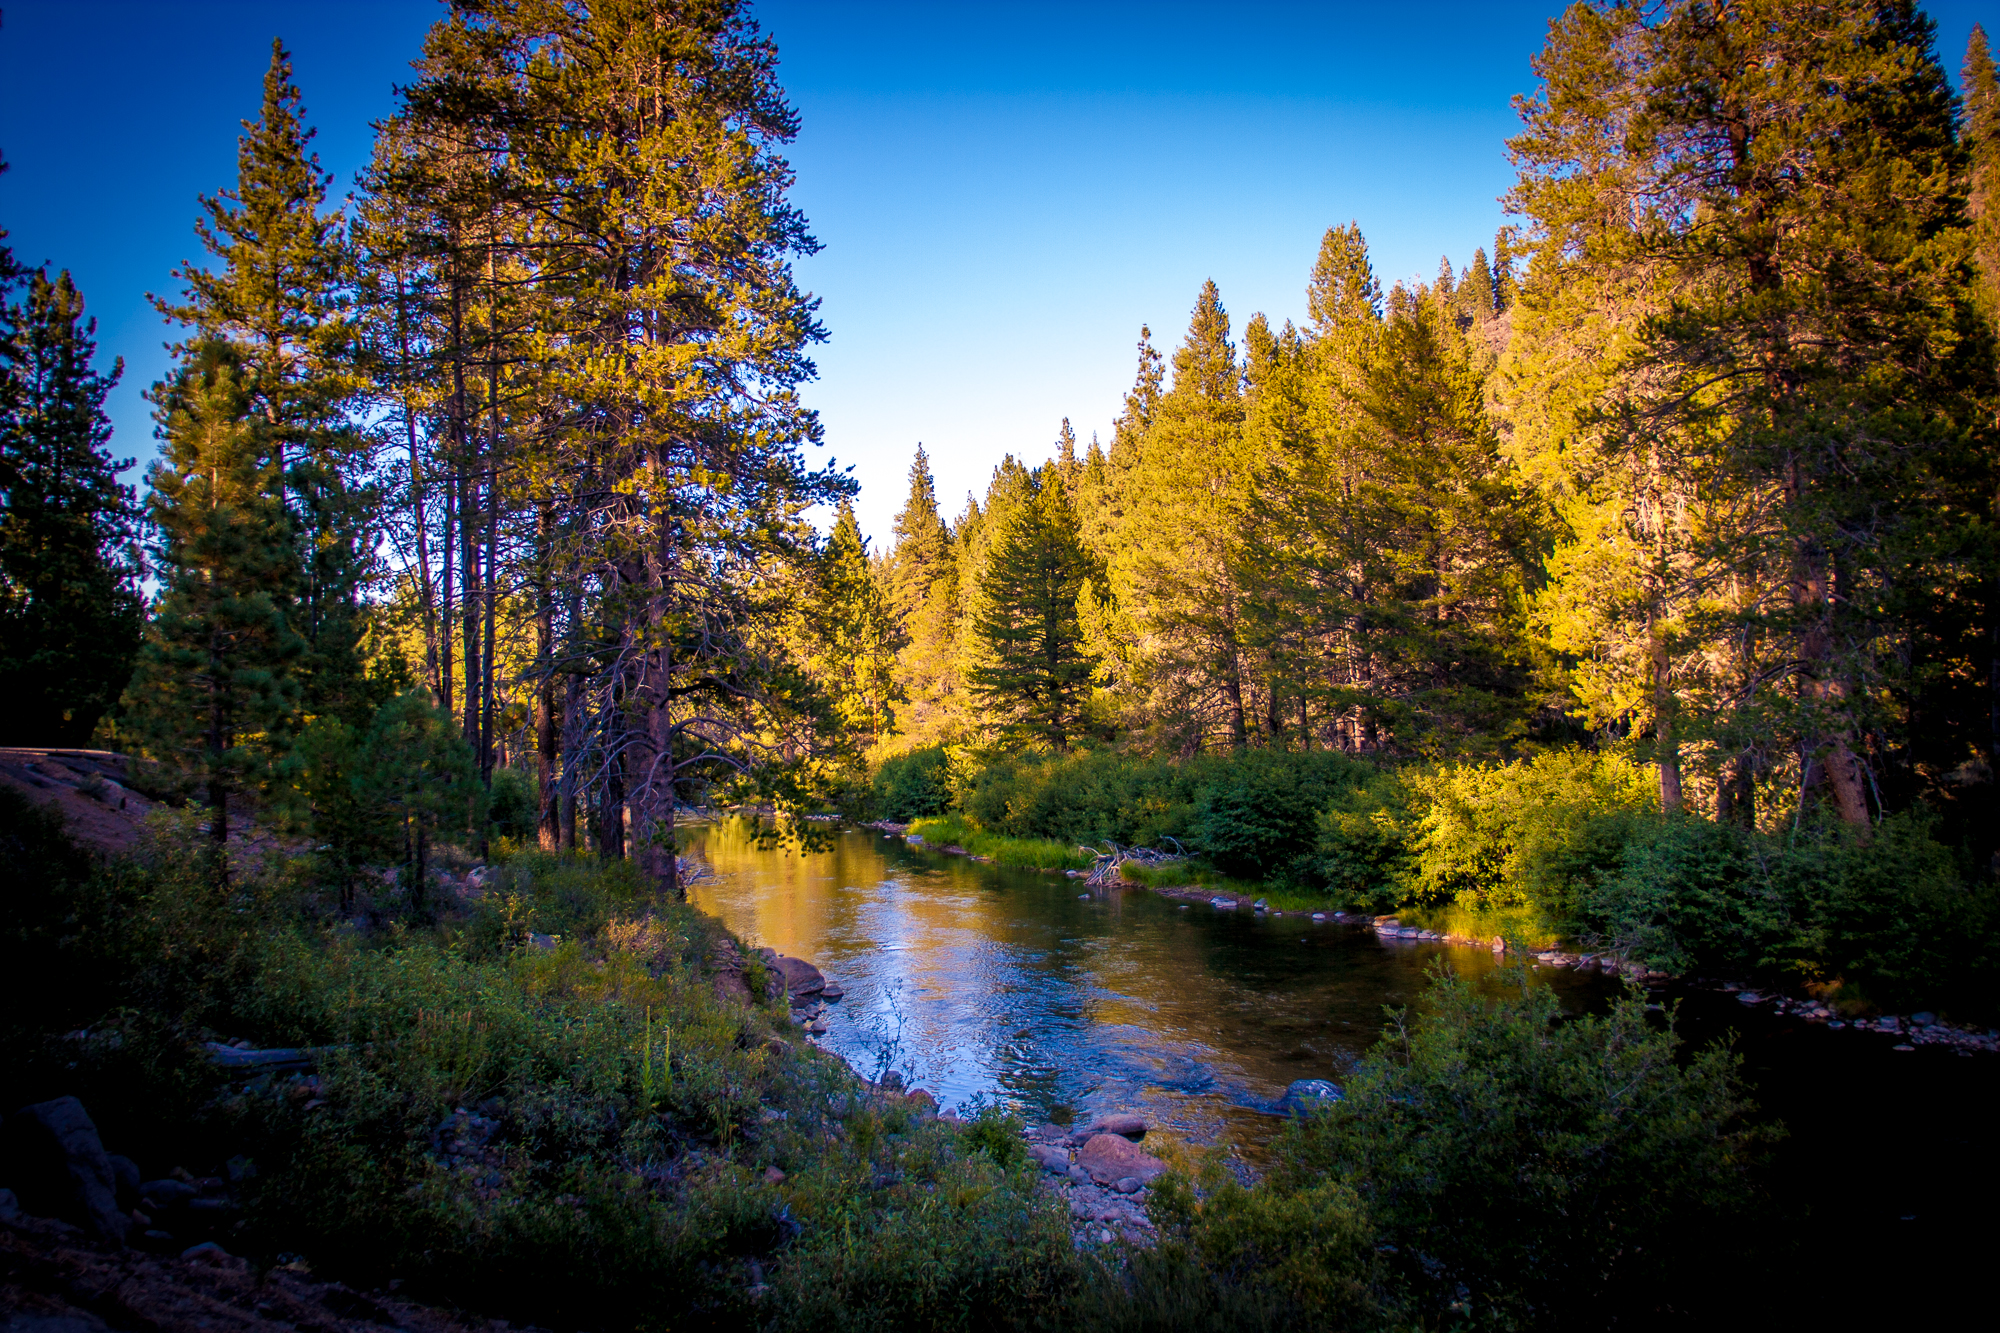 Truckee river at sunset